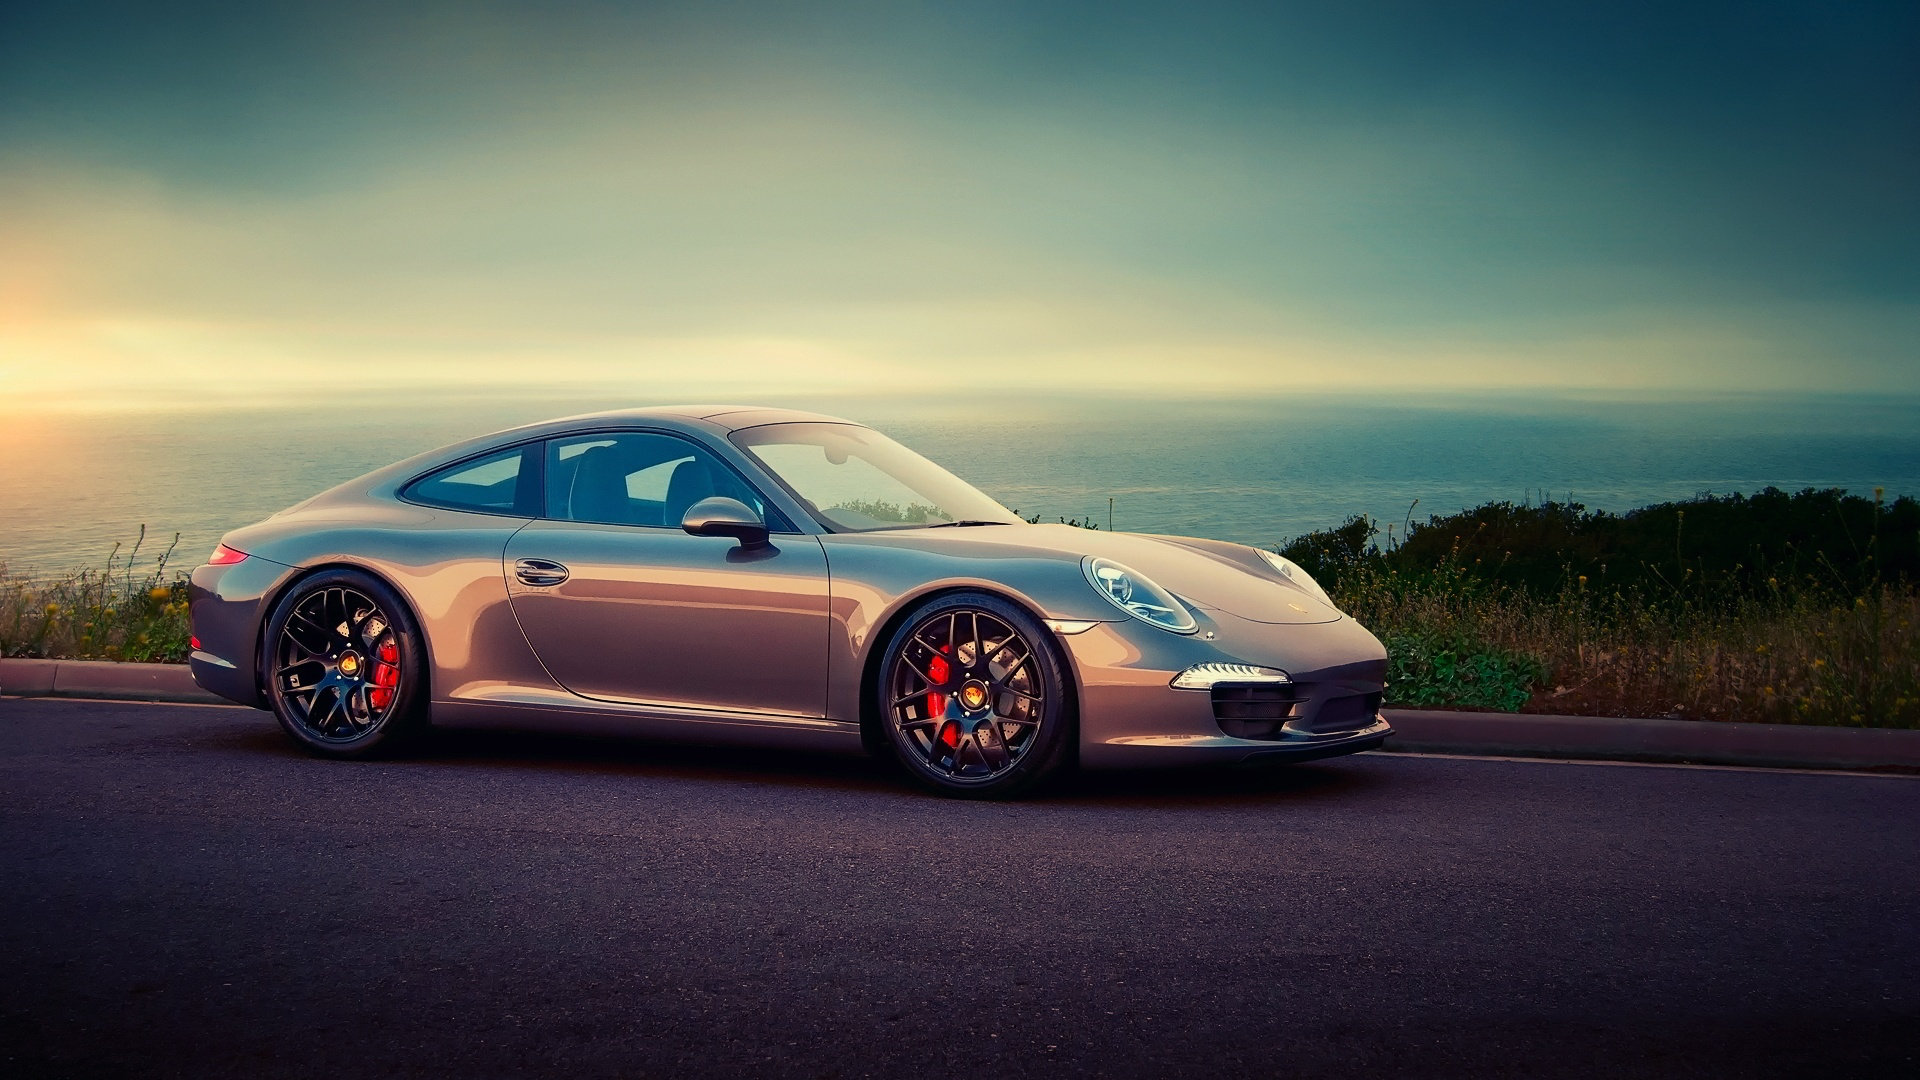 Awesome Porsche Wallpaper